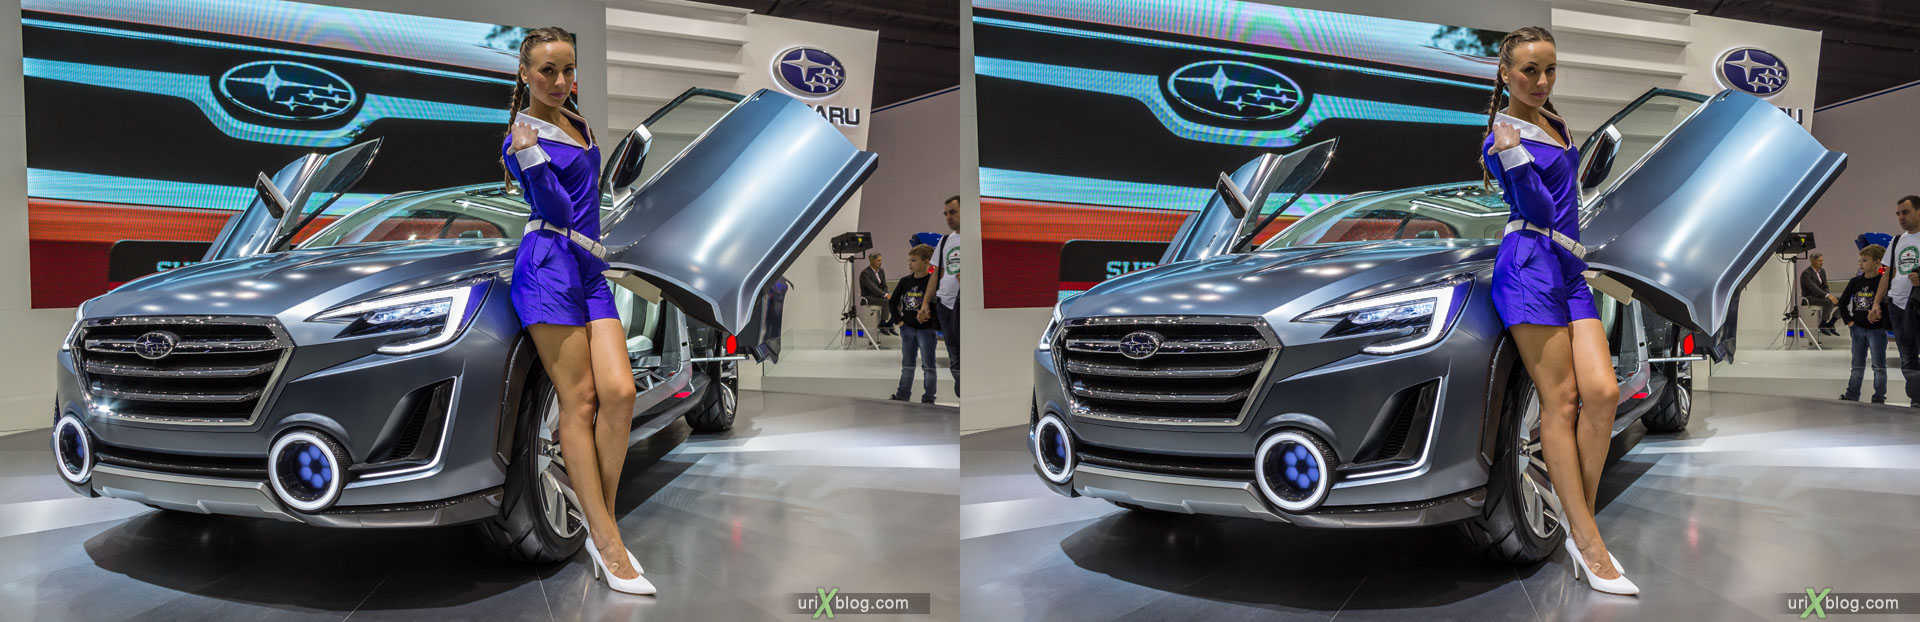 Subaru Viziv 2 Concept, Moscow International Automobile Salon 2014, MIAS 2014, girls, models, Crocus Expo, Moscow, Russia, 3D, stereo pair, cross-eyed, crossview, cross view stereo pair, stereoscopic, 2014